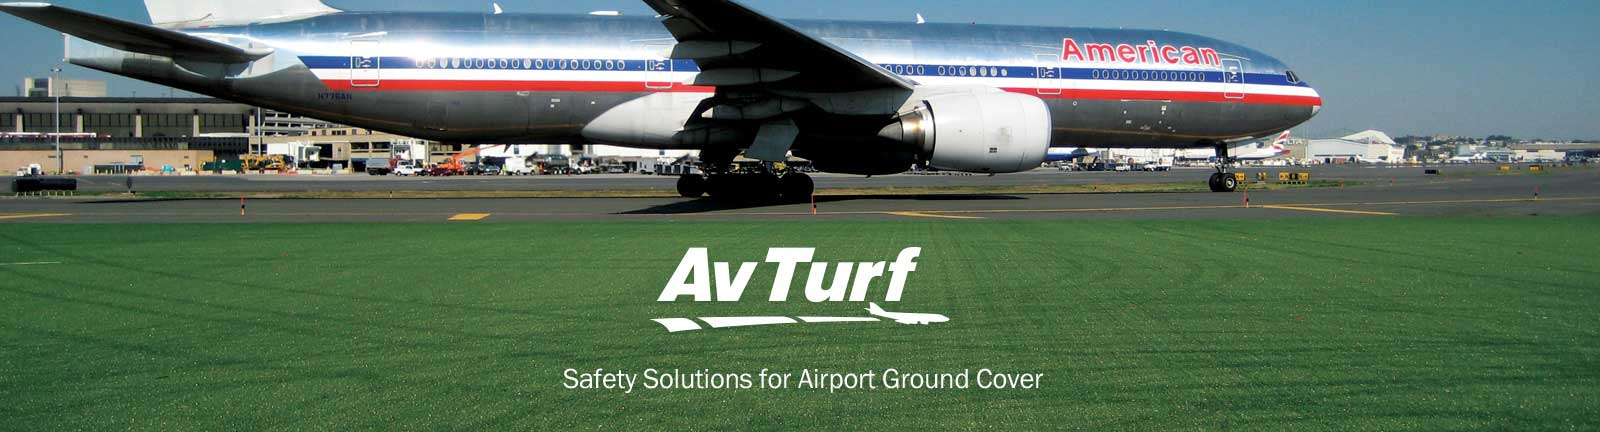 ActGlobal - Artificial Grass for aviation applications